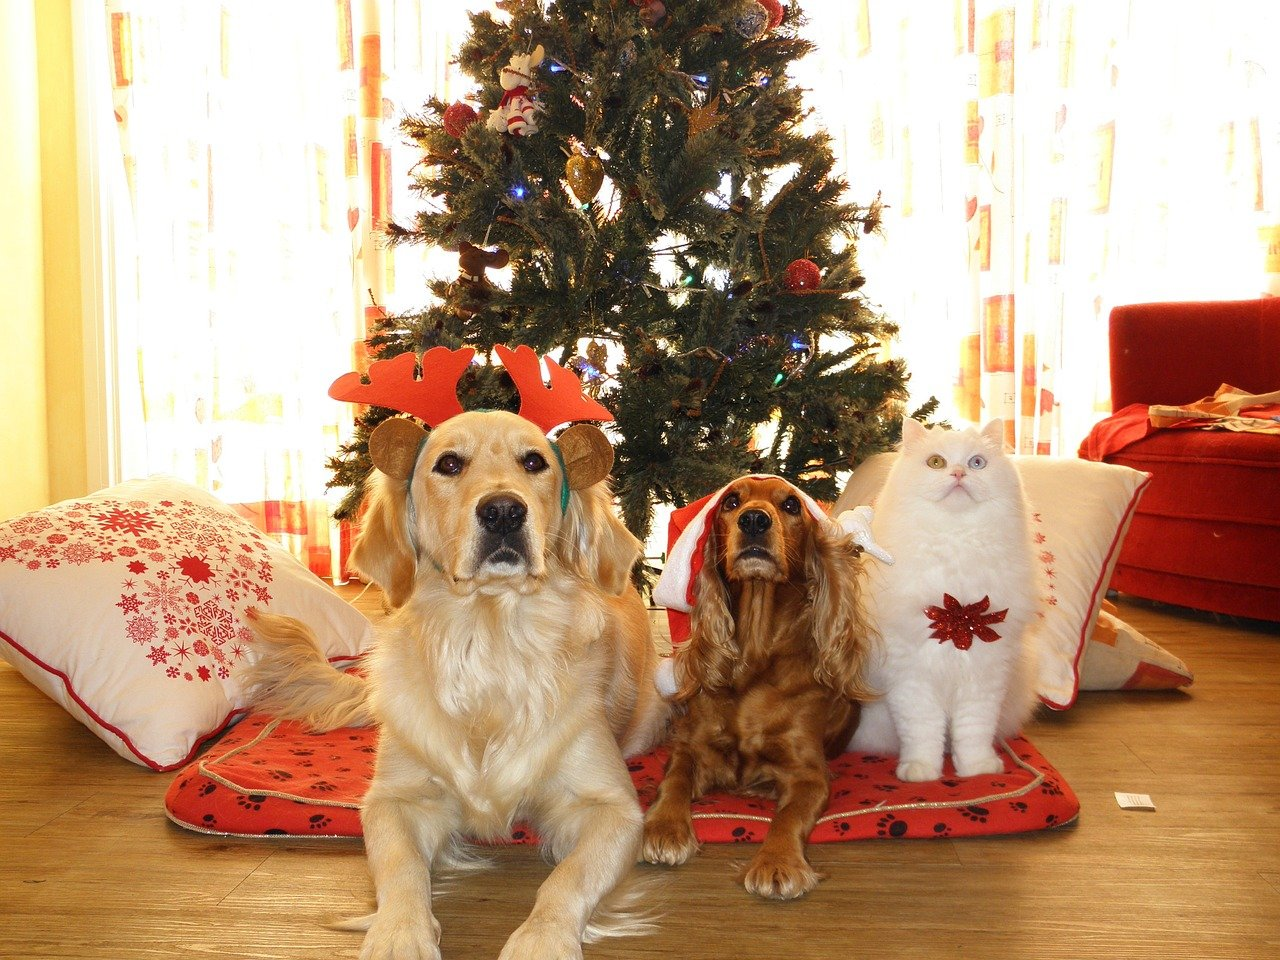 Gift Giving Guide: Should You Give a Pet as a Gift?